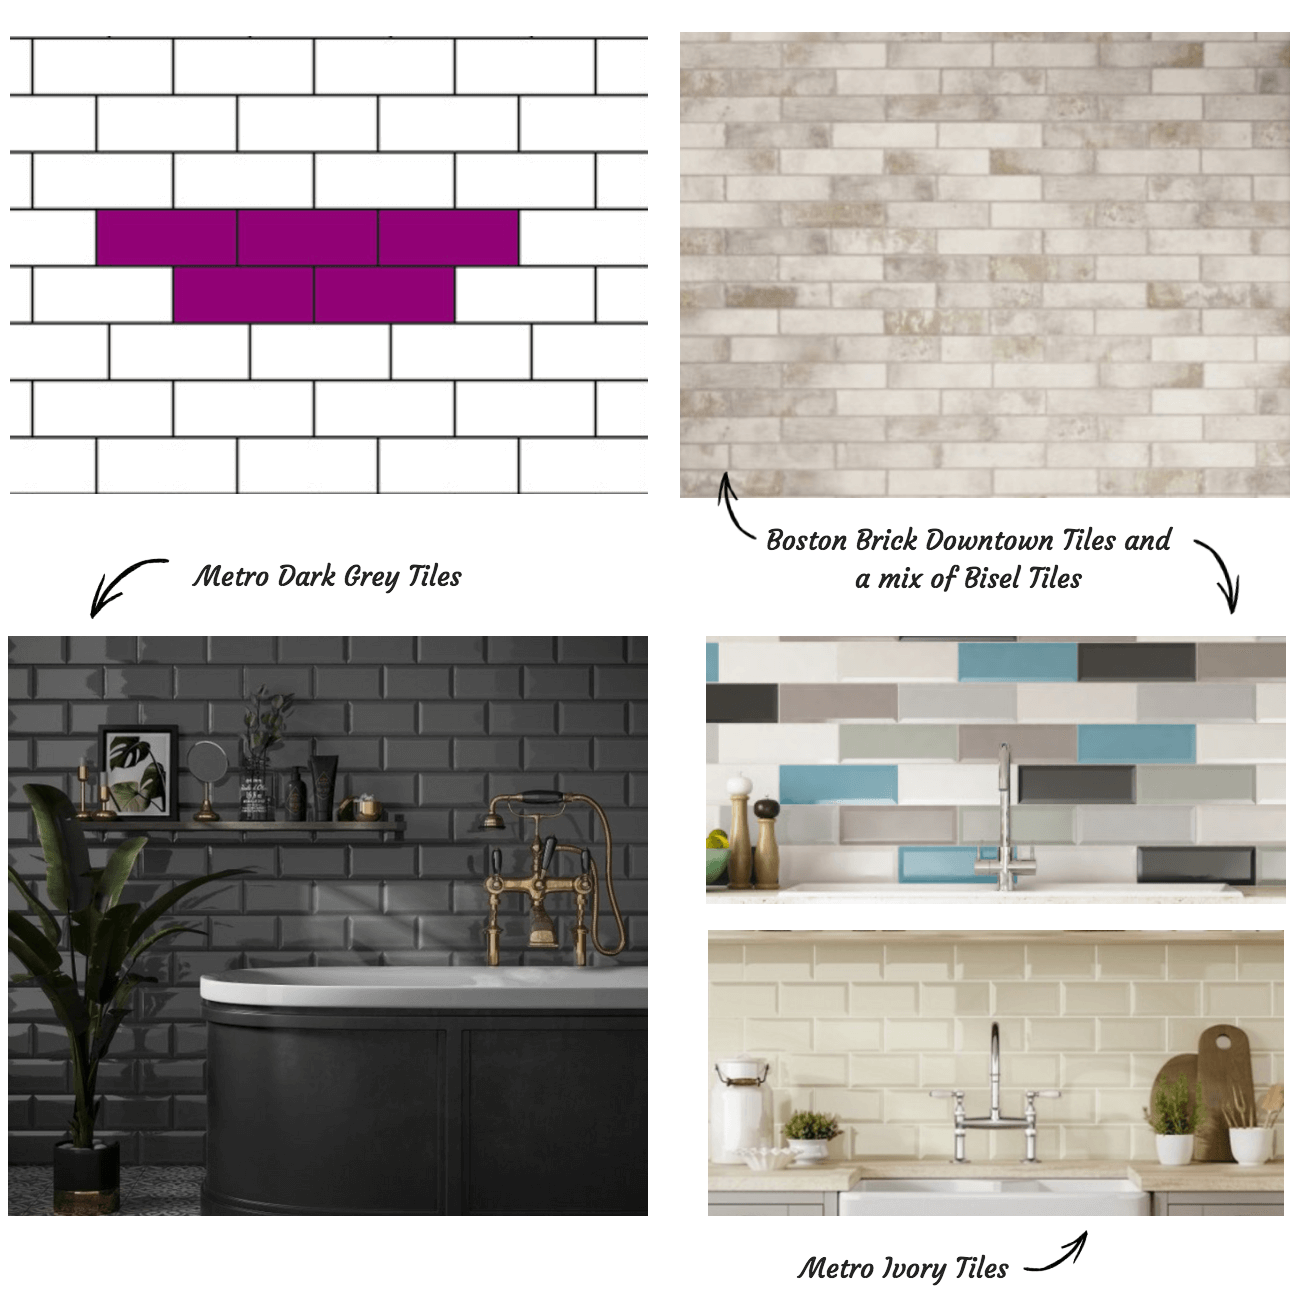 Top 7 Tile Patterns You Need To Know Popular Tile Layouts